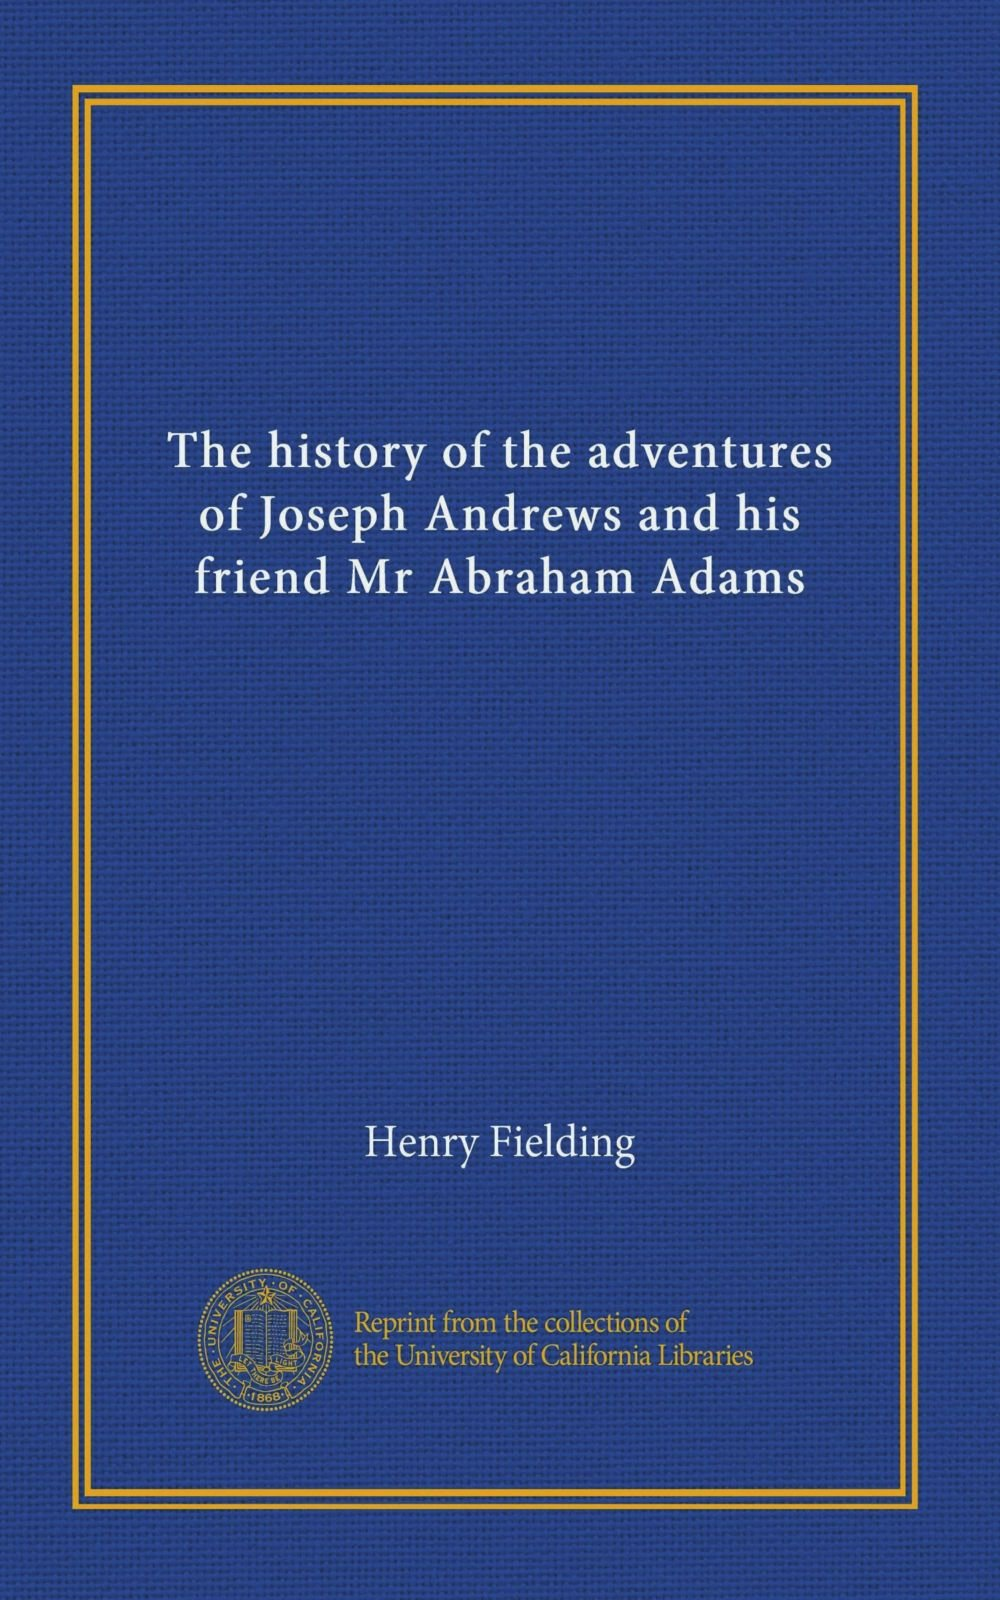 Download The history of the adventures of Joseph Andrews and his friend Mr Abraham Adams PDF